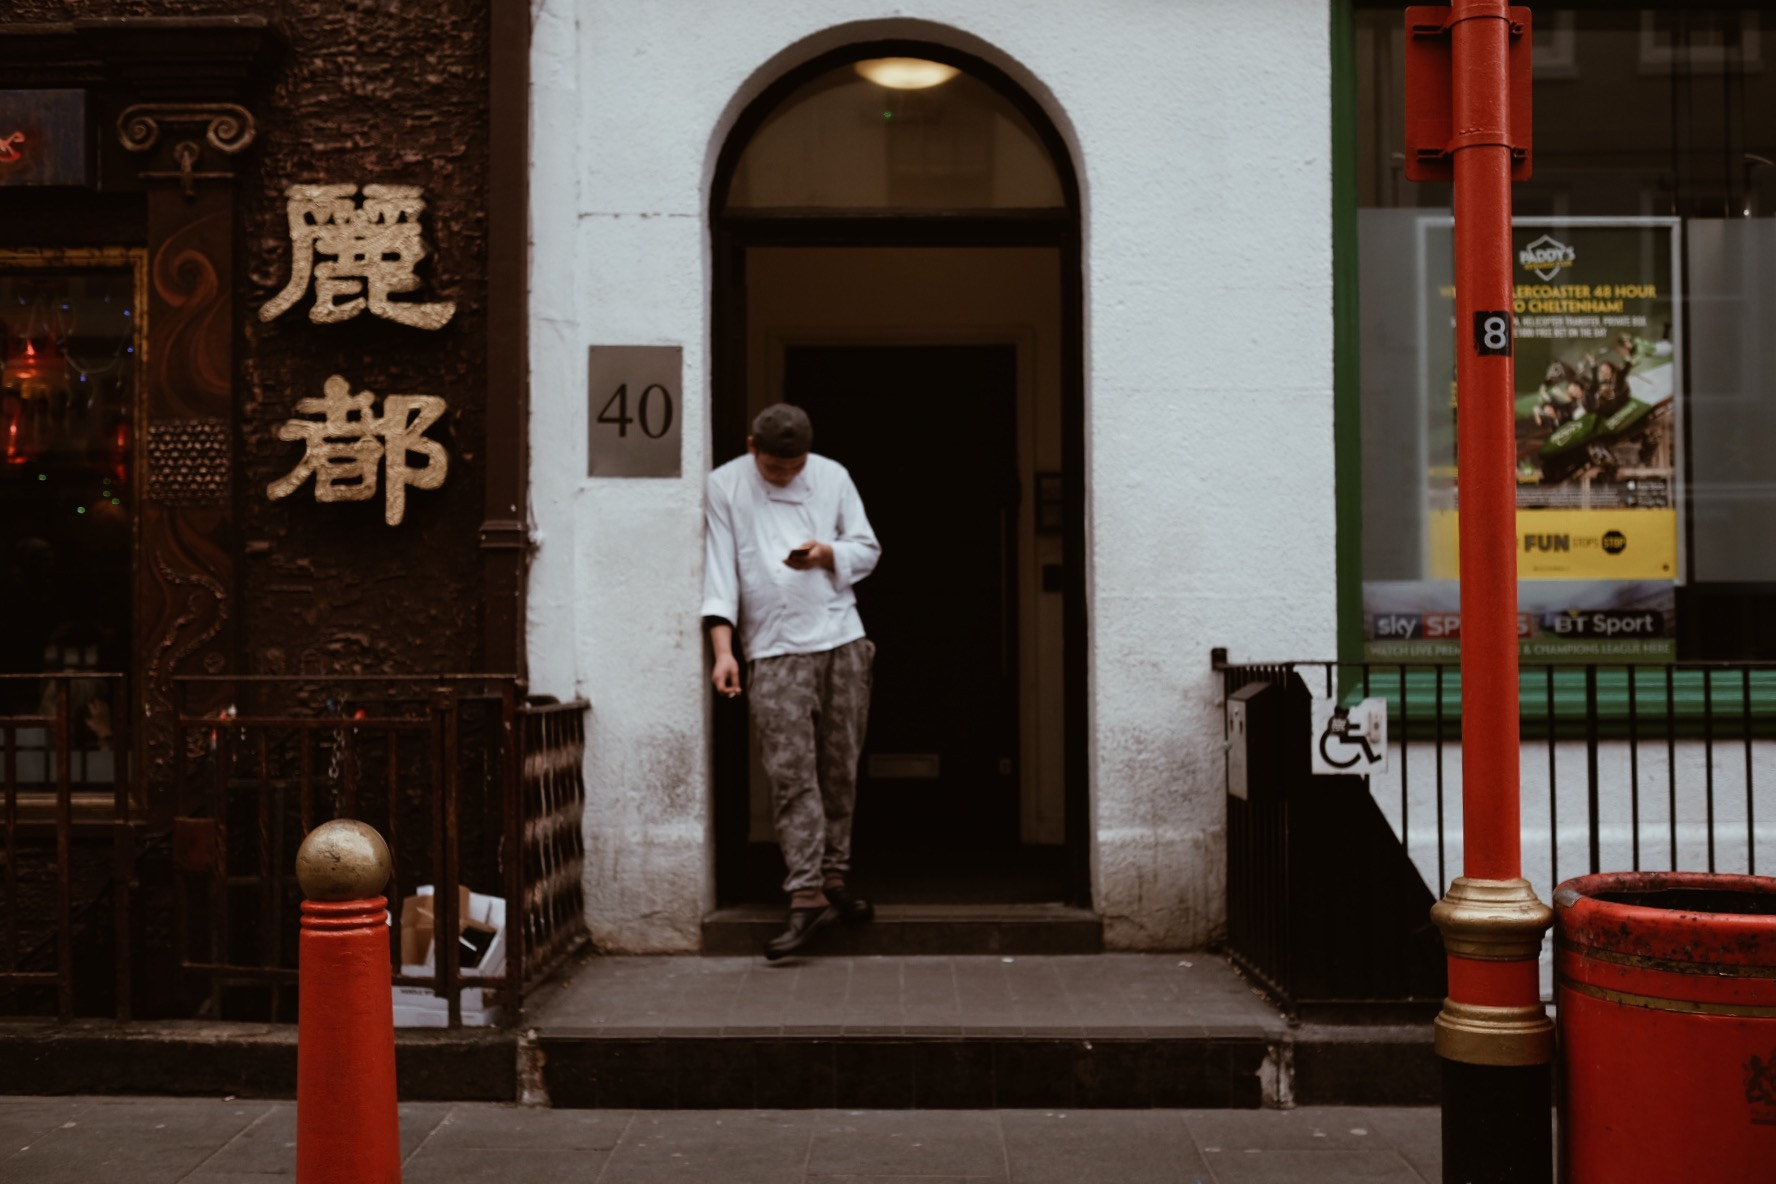 London street photography in Chinatown.  Fuji X-T2 +23mm 1.4 Lens.